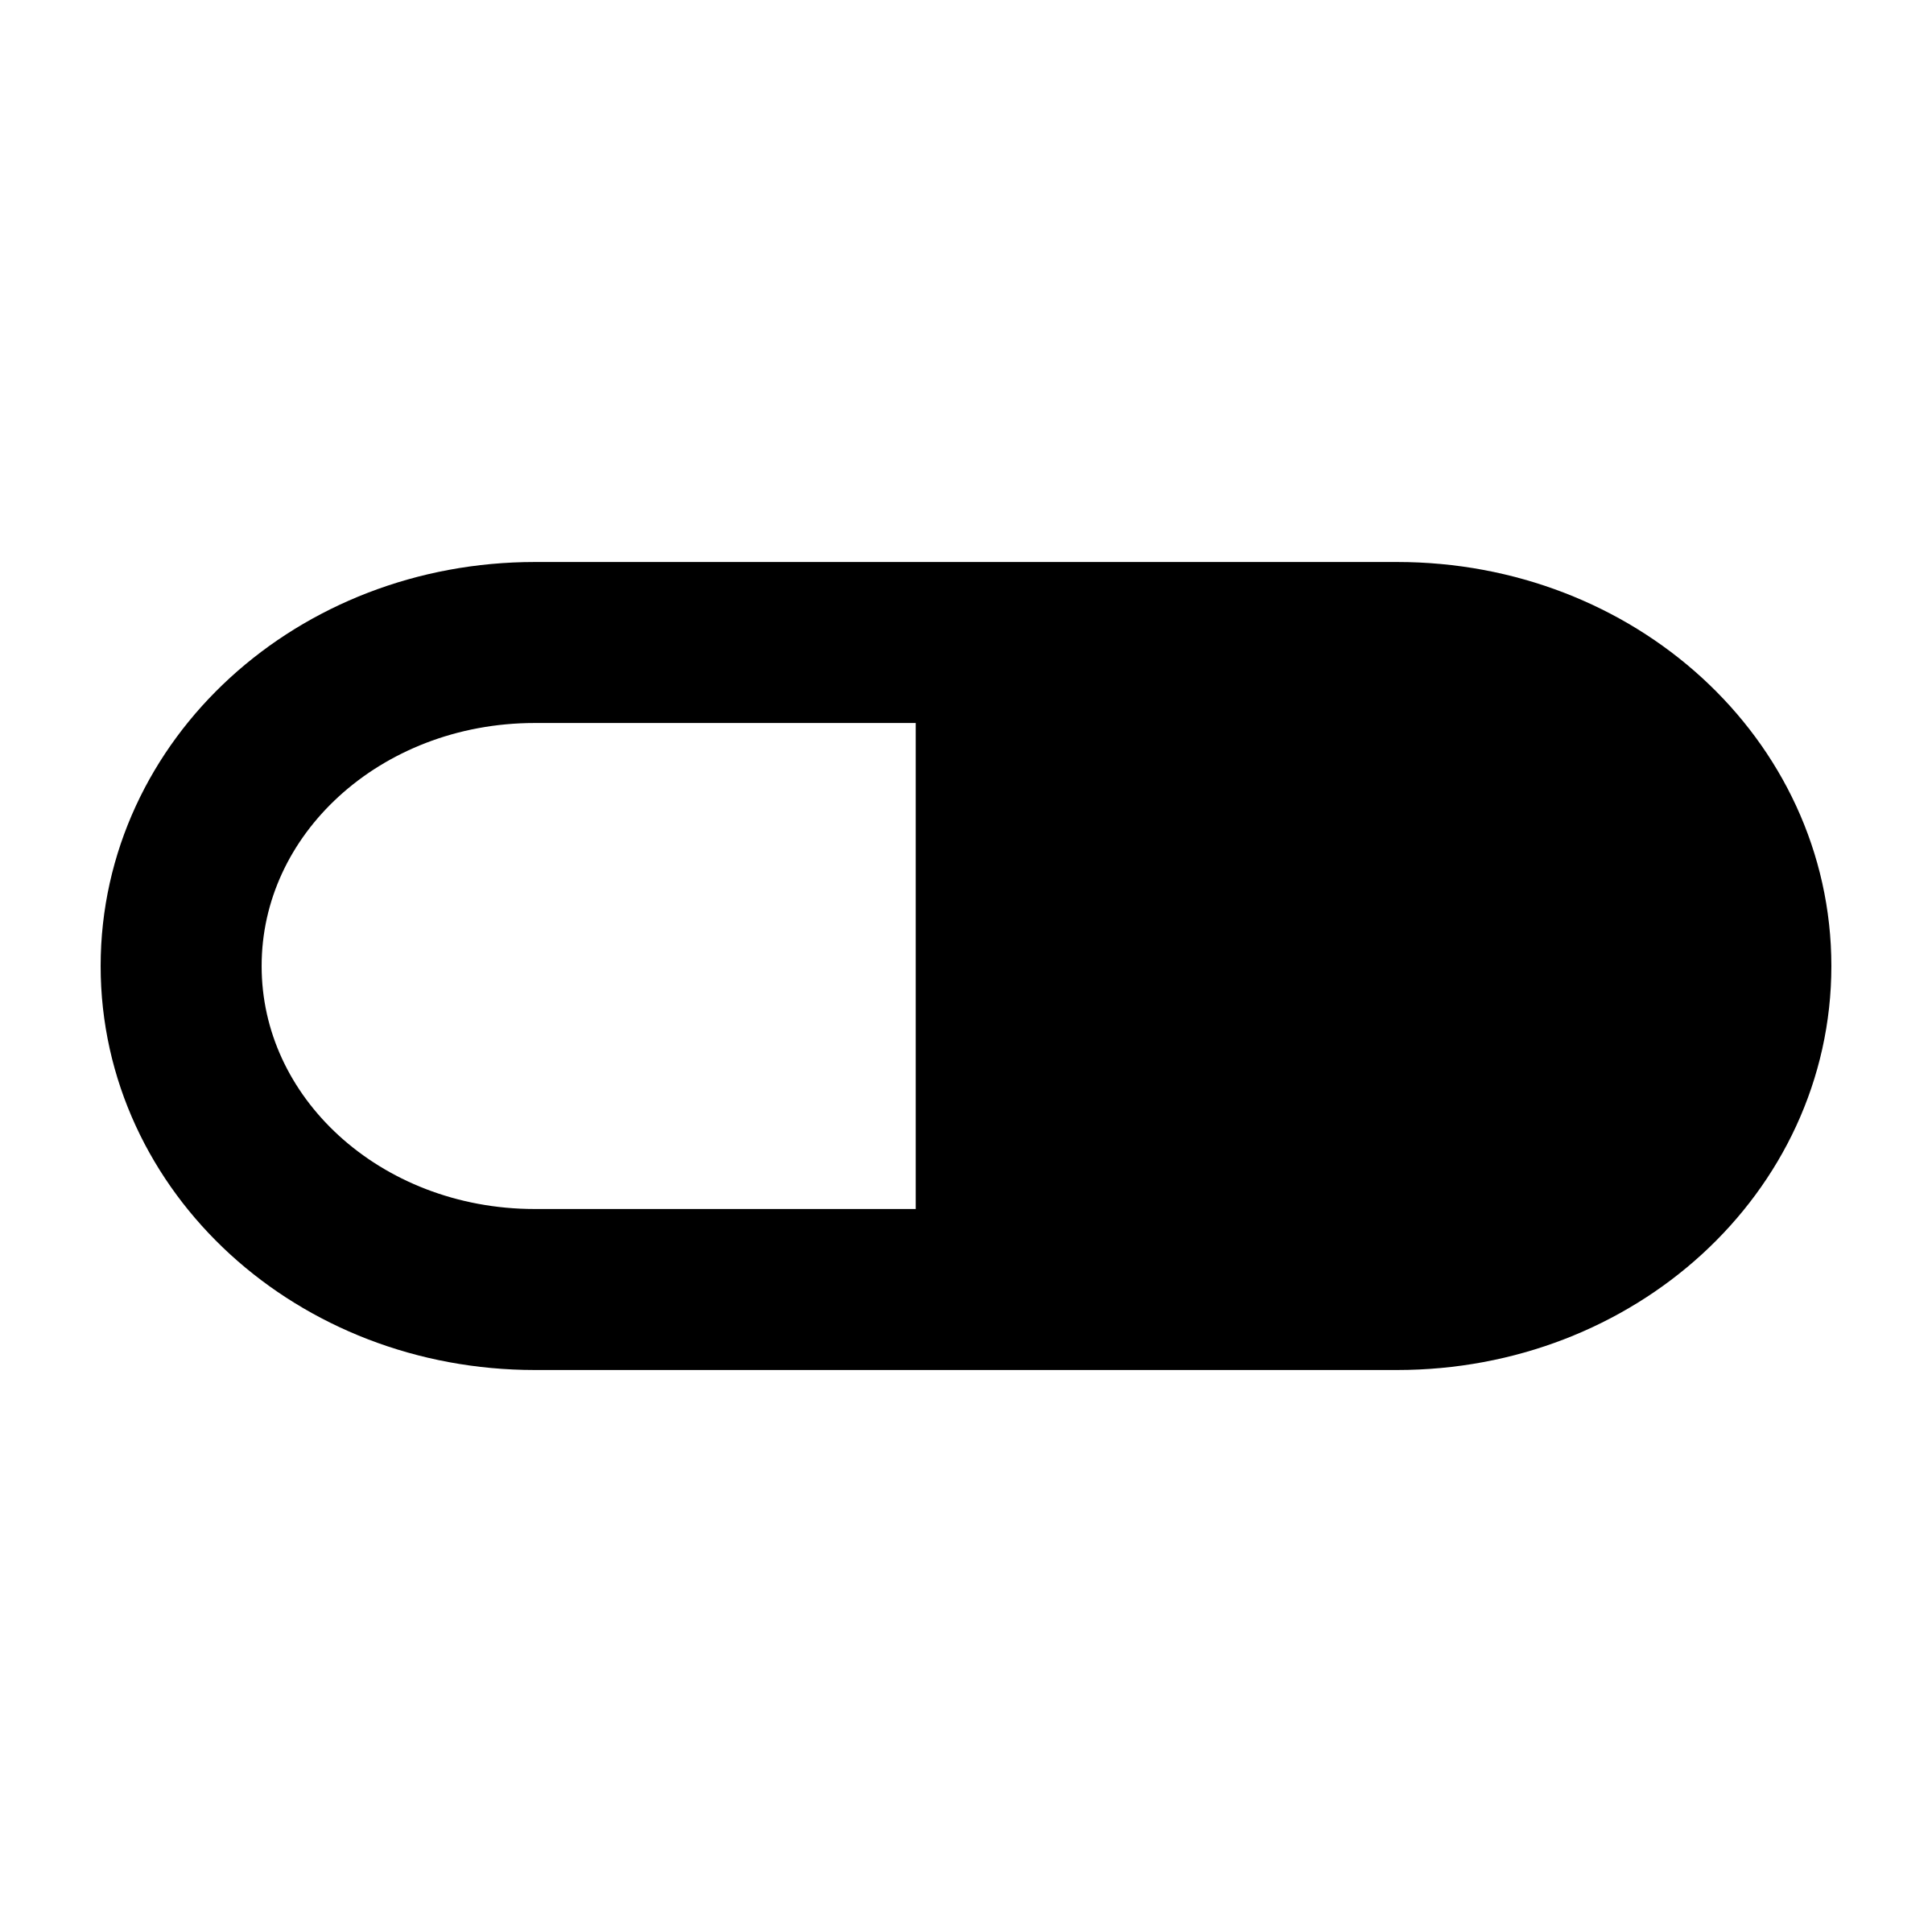 Pill icon clipart transparent library Pill Clipart | Free download best Pill Clipart on ClipArtMag.com transparent library